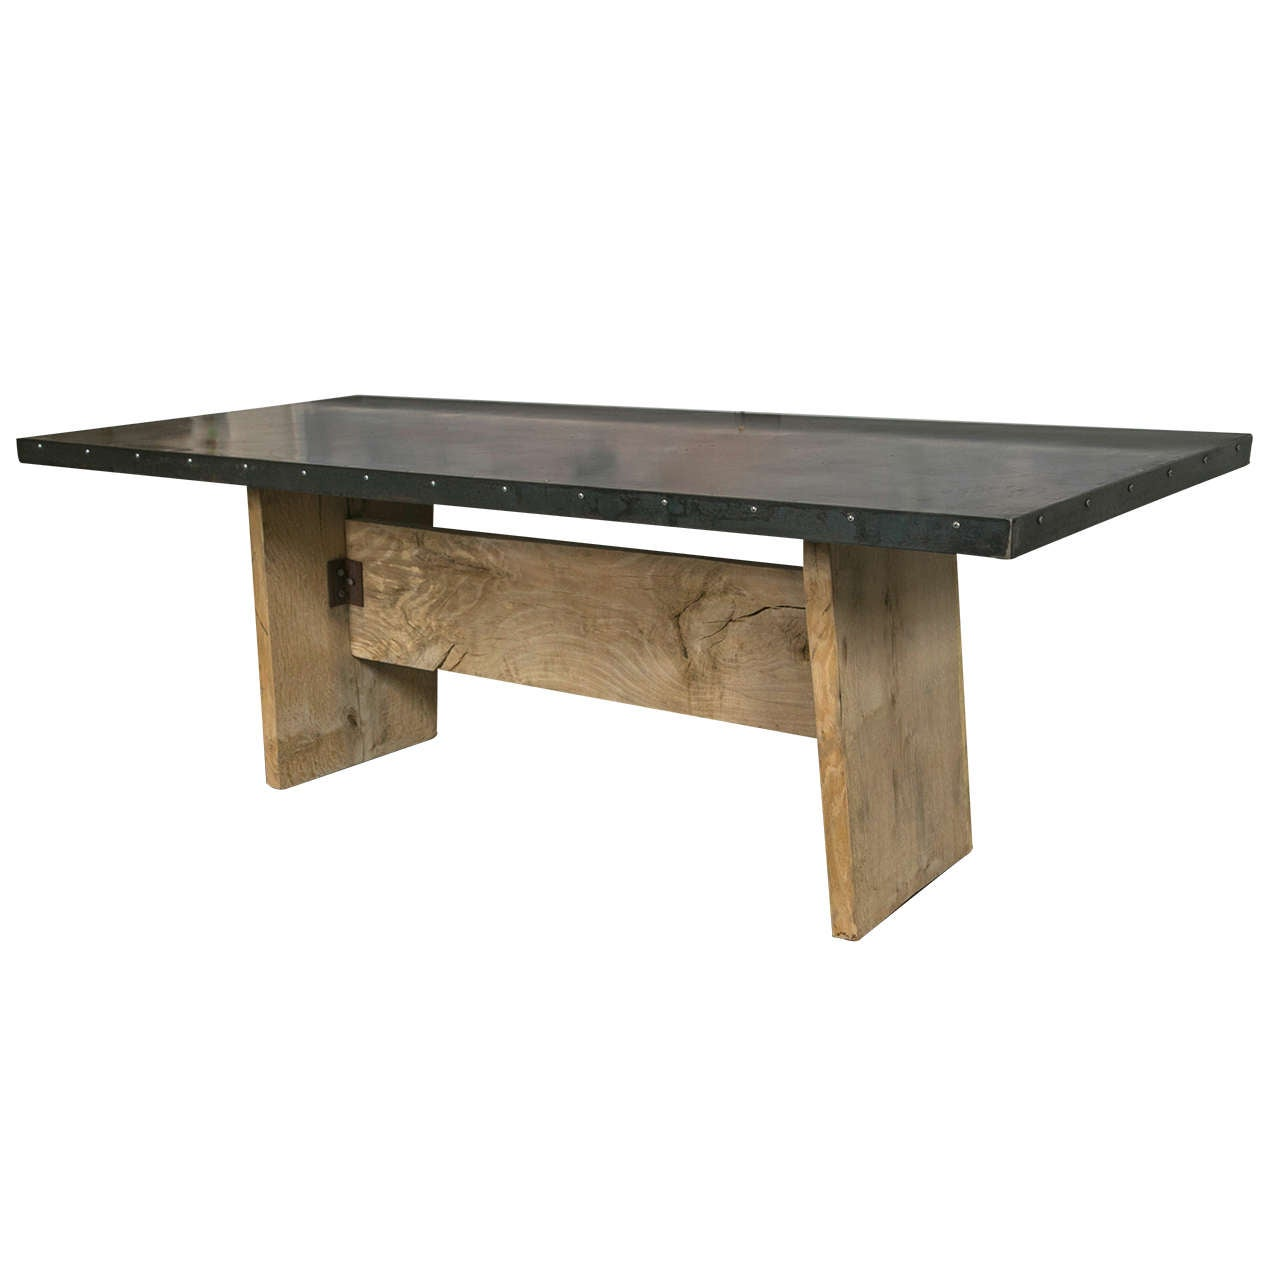 Zinc top trestle table at 1stdibs for Table exterieur zinc